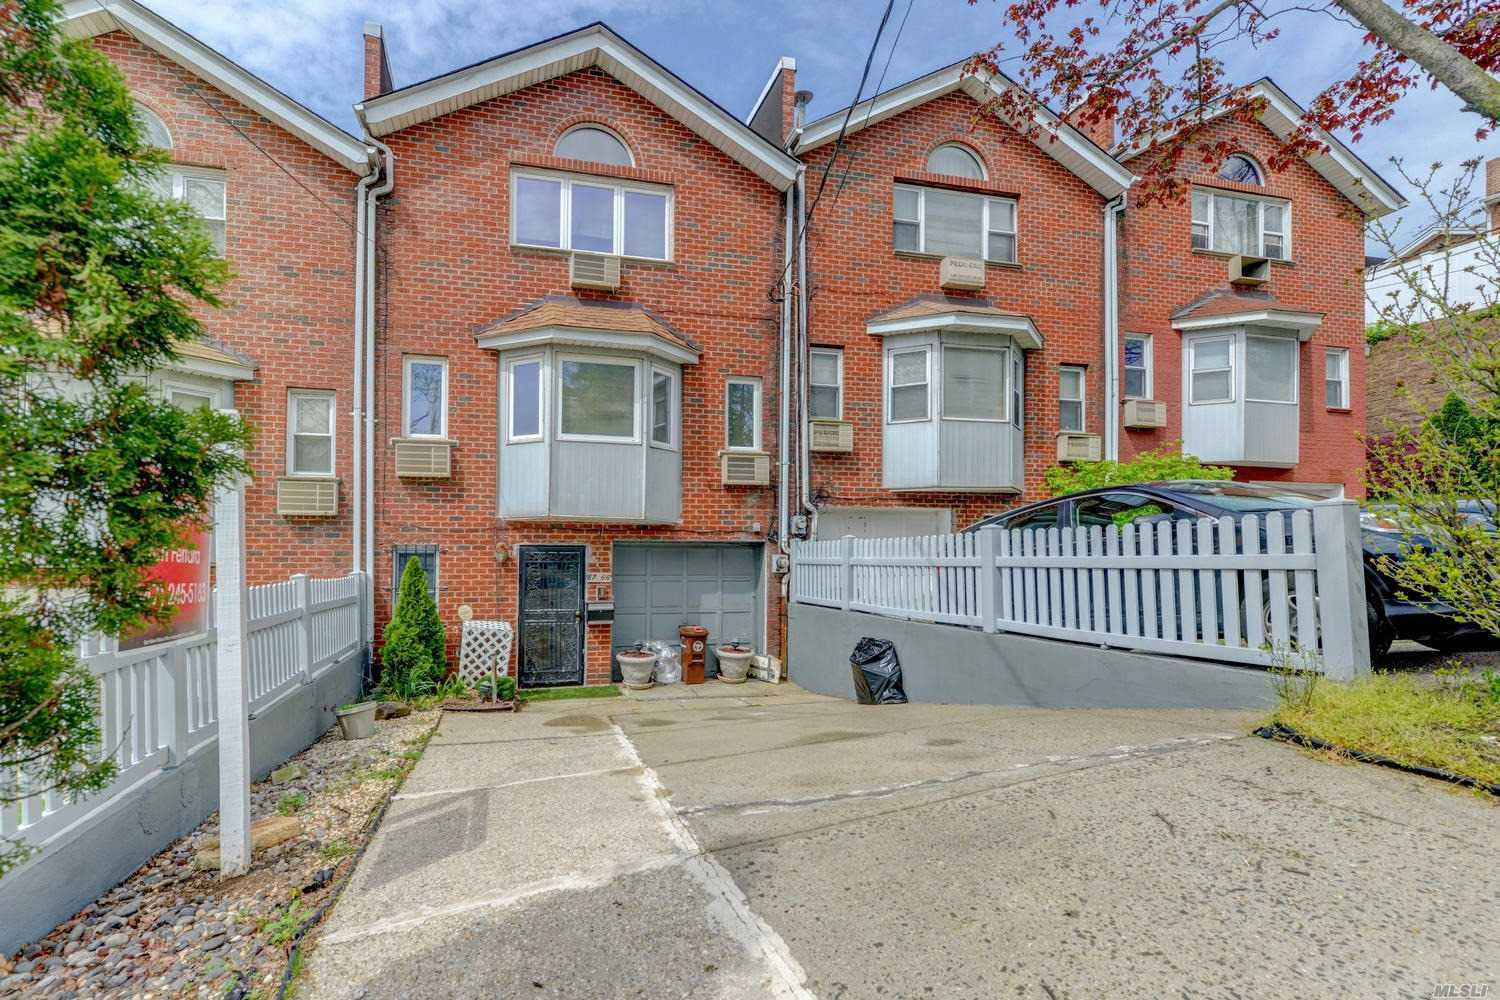 Come See This Beautiful 1 Family Townhouse In Jamaica Estates! Located In Prestigious Jamaica Estates, This 3 Bedroom 2.5 Bathroom Townhouse Has a Private Driveway, Garage, And Backyard ... Close To Shopping And Restaurants ... 1 Block From Hillside Ave ... Call For More Details ...